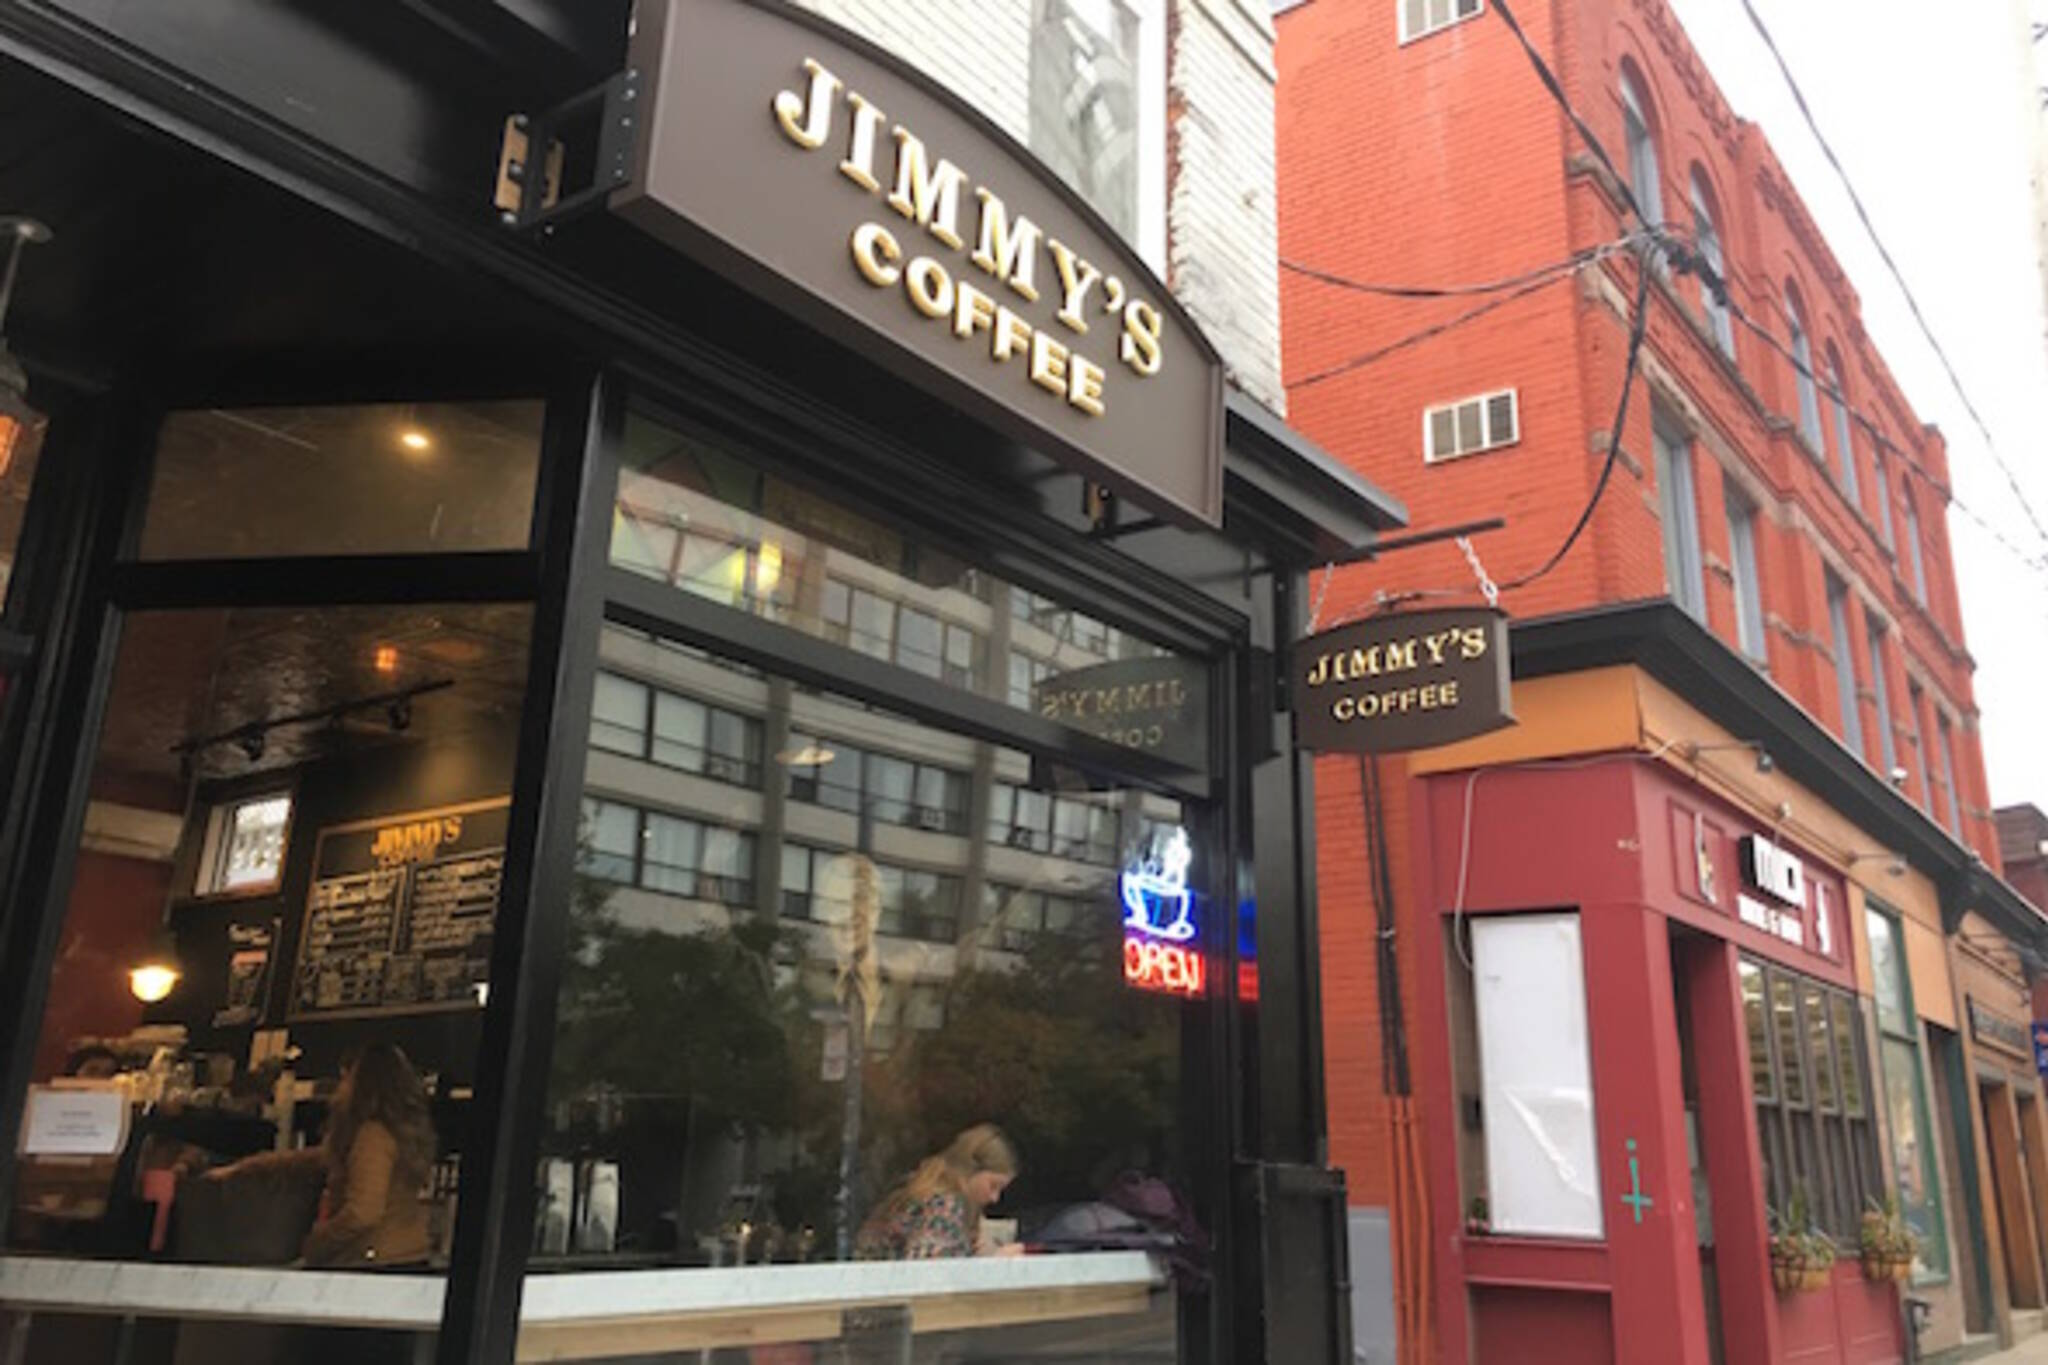 Jimmys Coffee mccaul Toronto